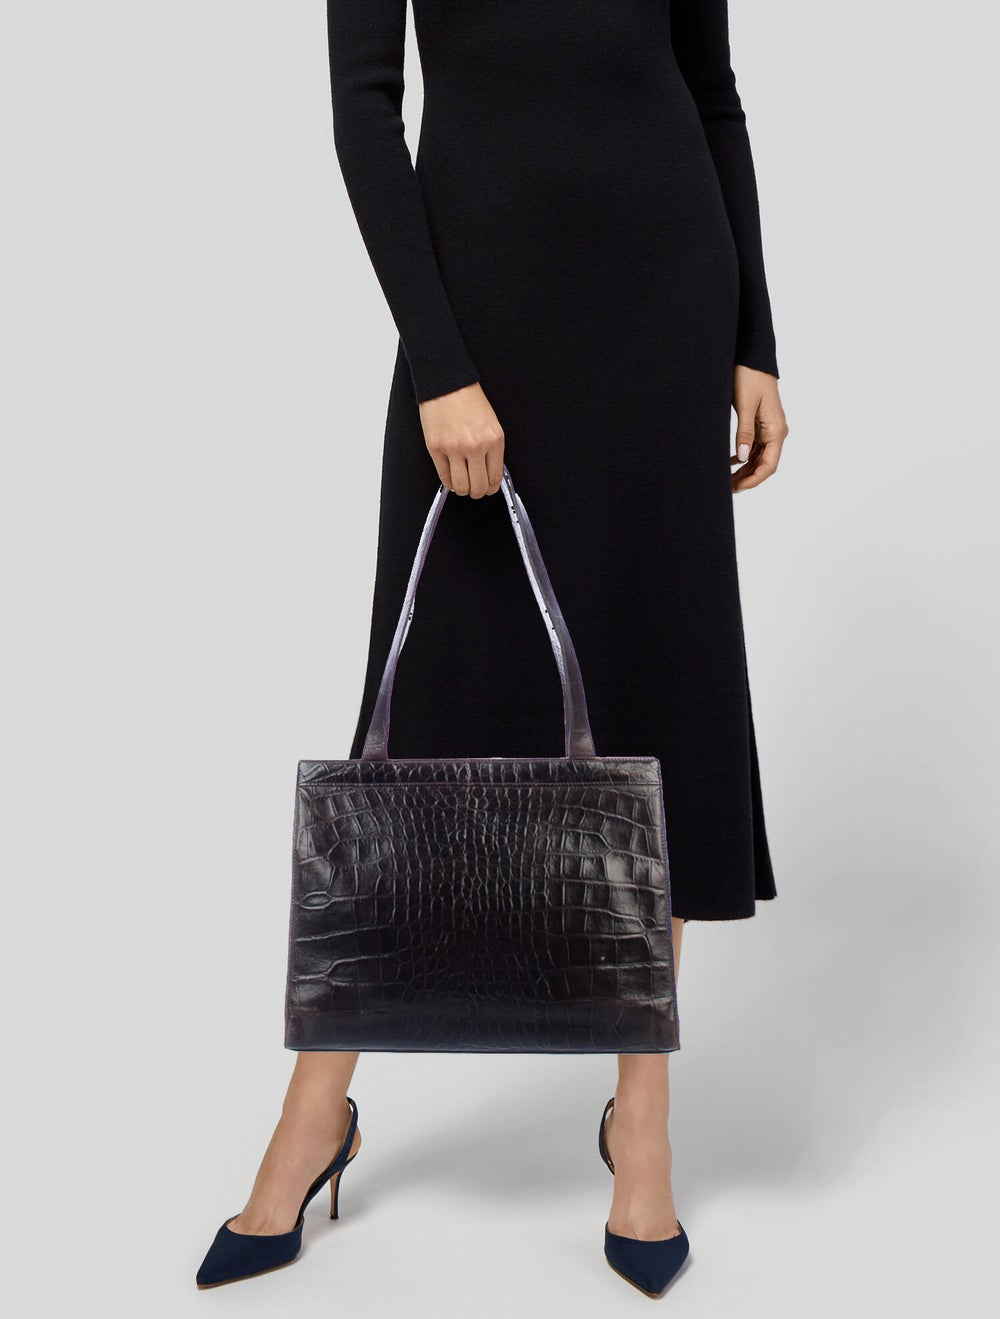 Mulberry Embossed Leather Tote Brown - image 2